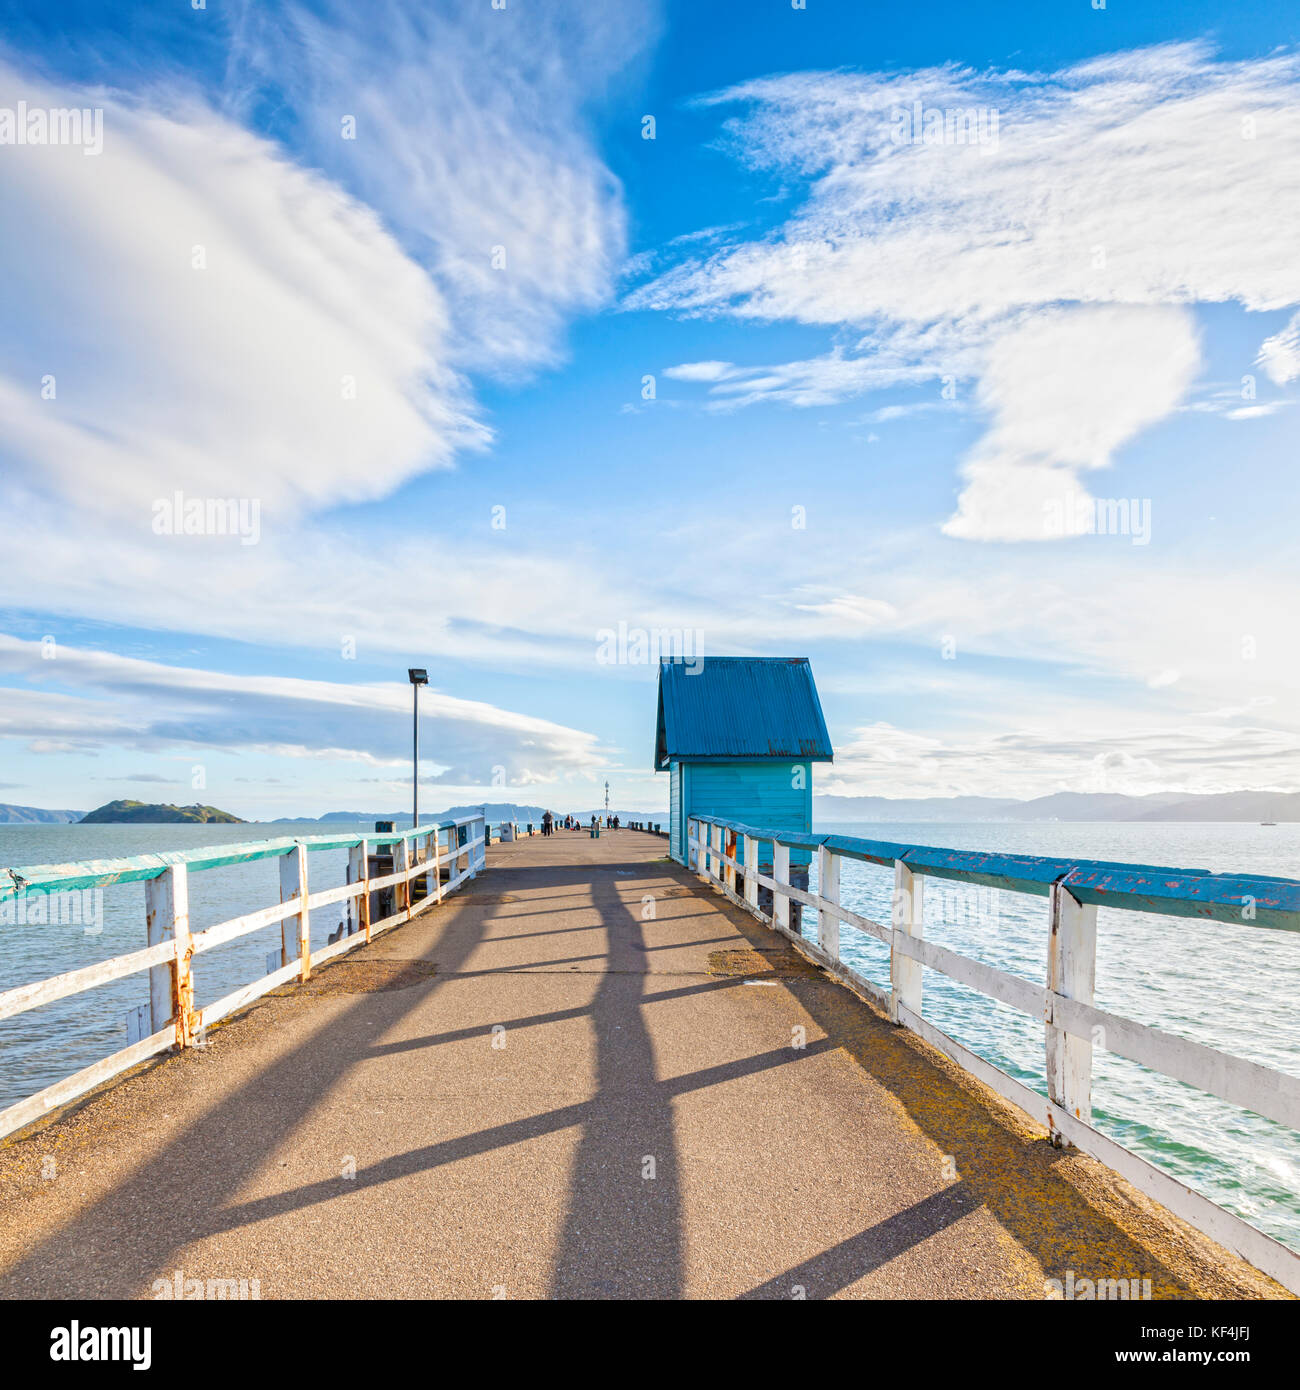 Old jetty at Petone, Wellington,New Zealand under a dramatic sunny sky. - Stock Image